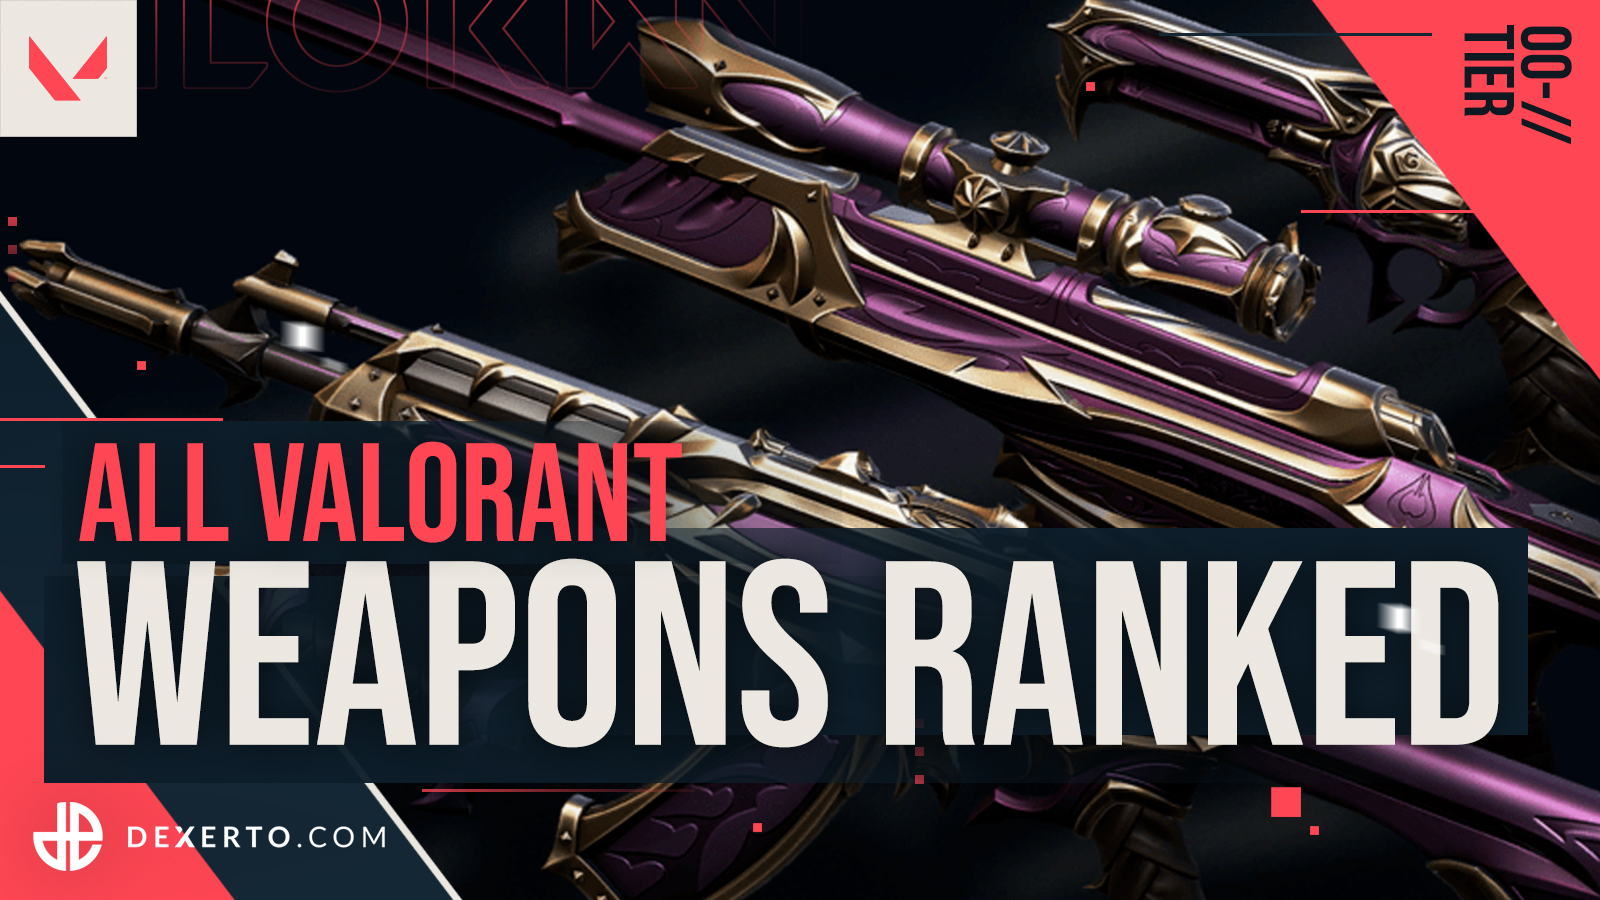 Best weapons to use in Valorant: Every gun ranked